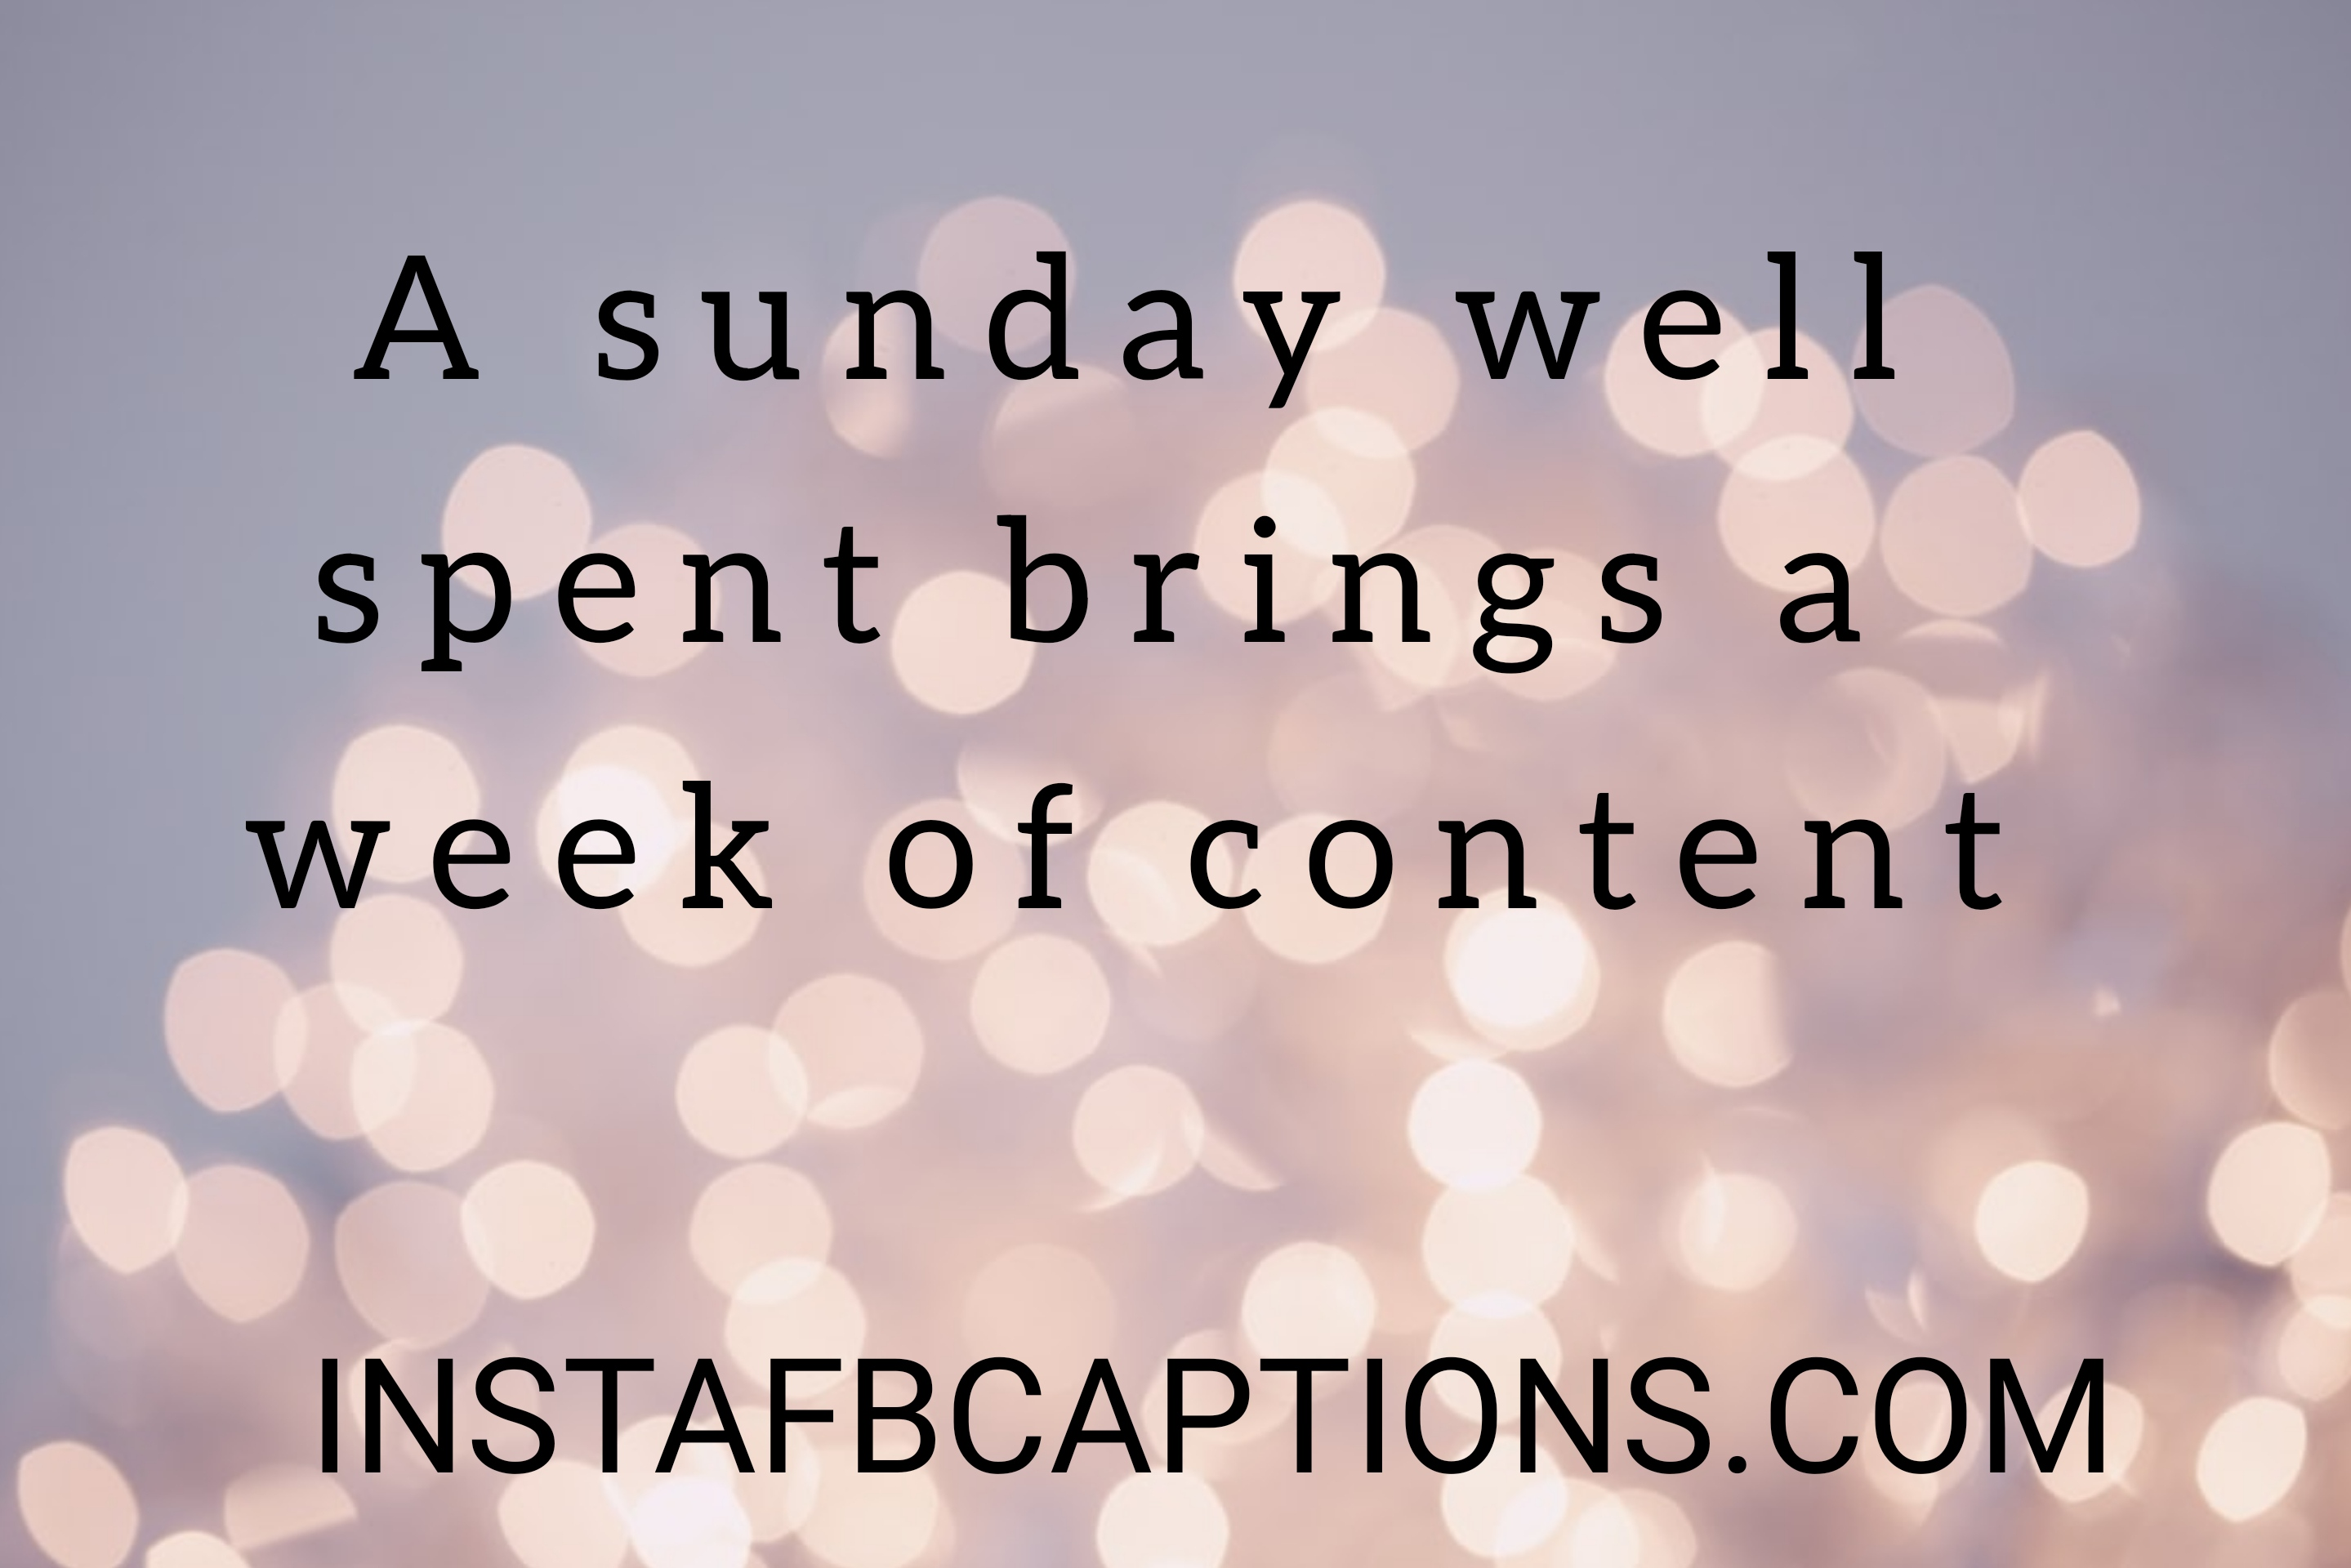 A Sunday Well Spent Brings A Week Of Content  - a sunday well spent brings a week of content - 500+ WEEKEND Instagram Captions 2021